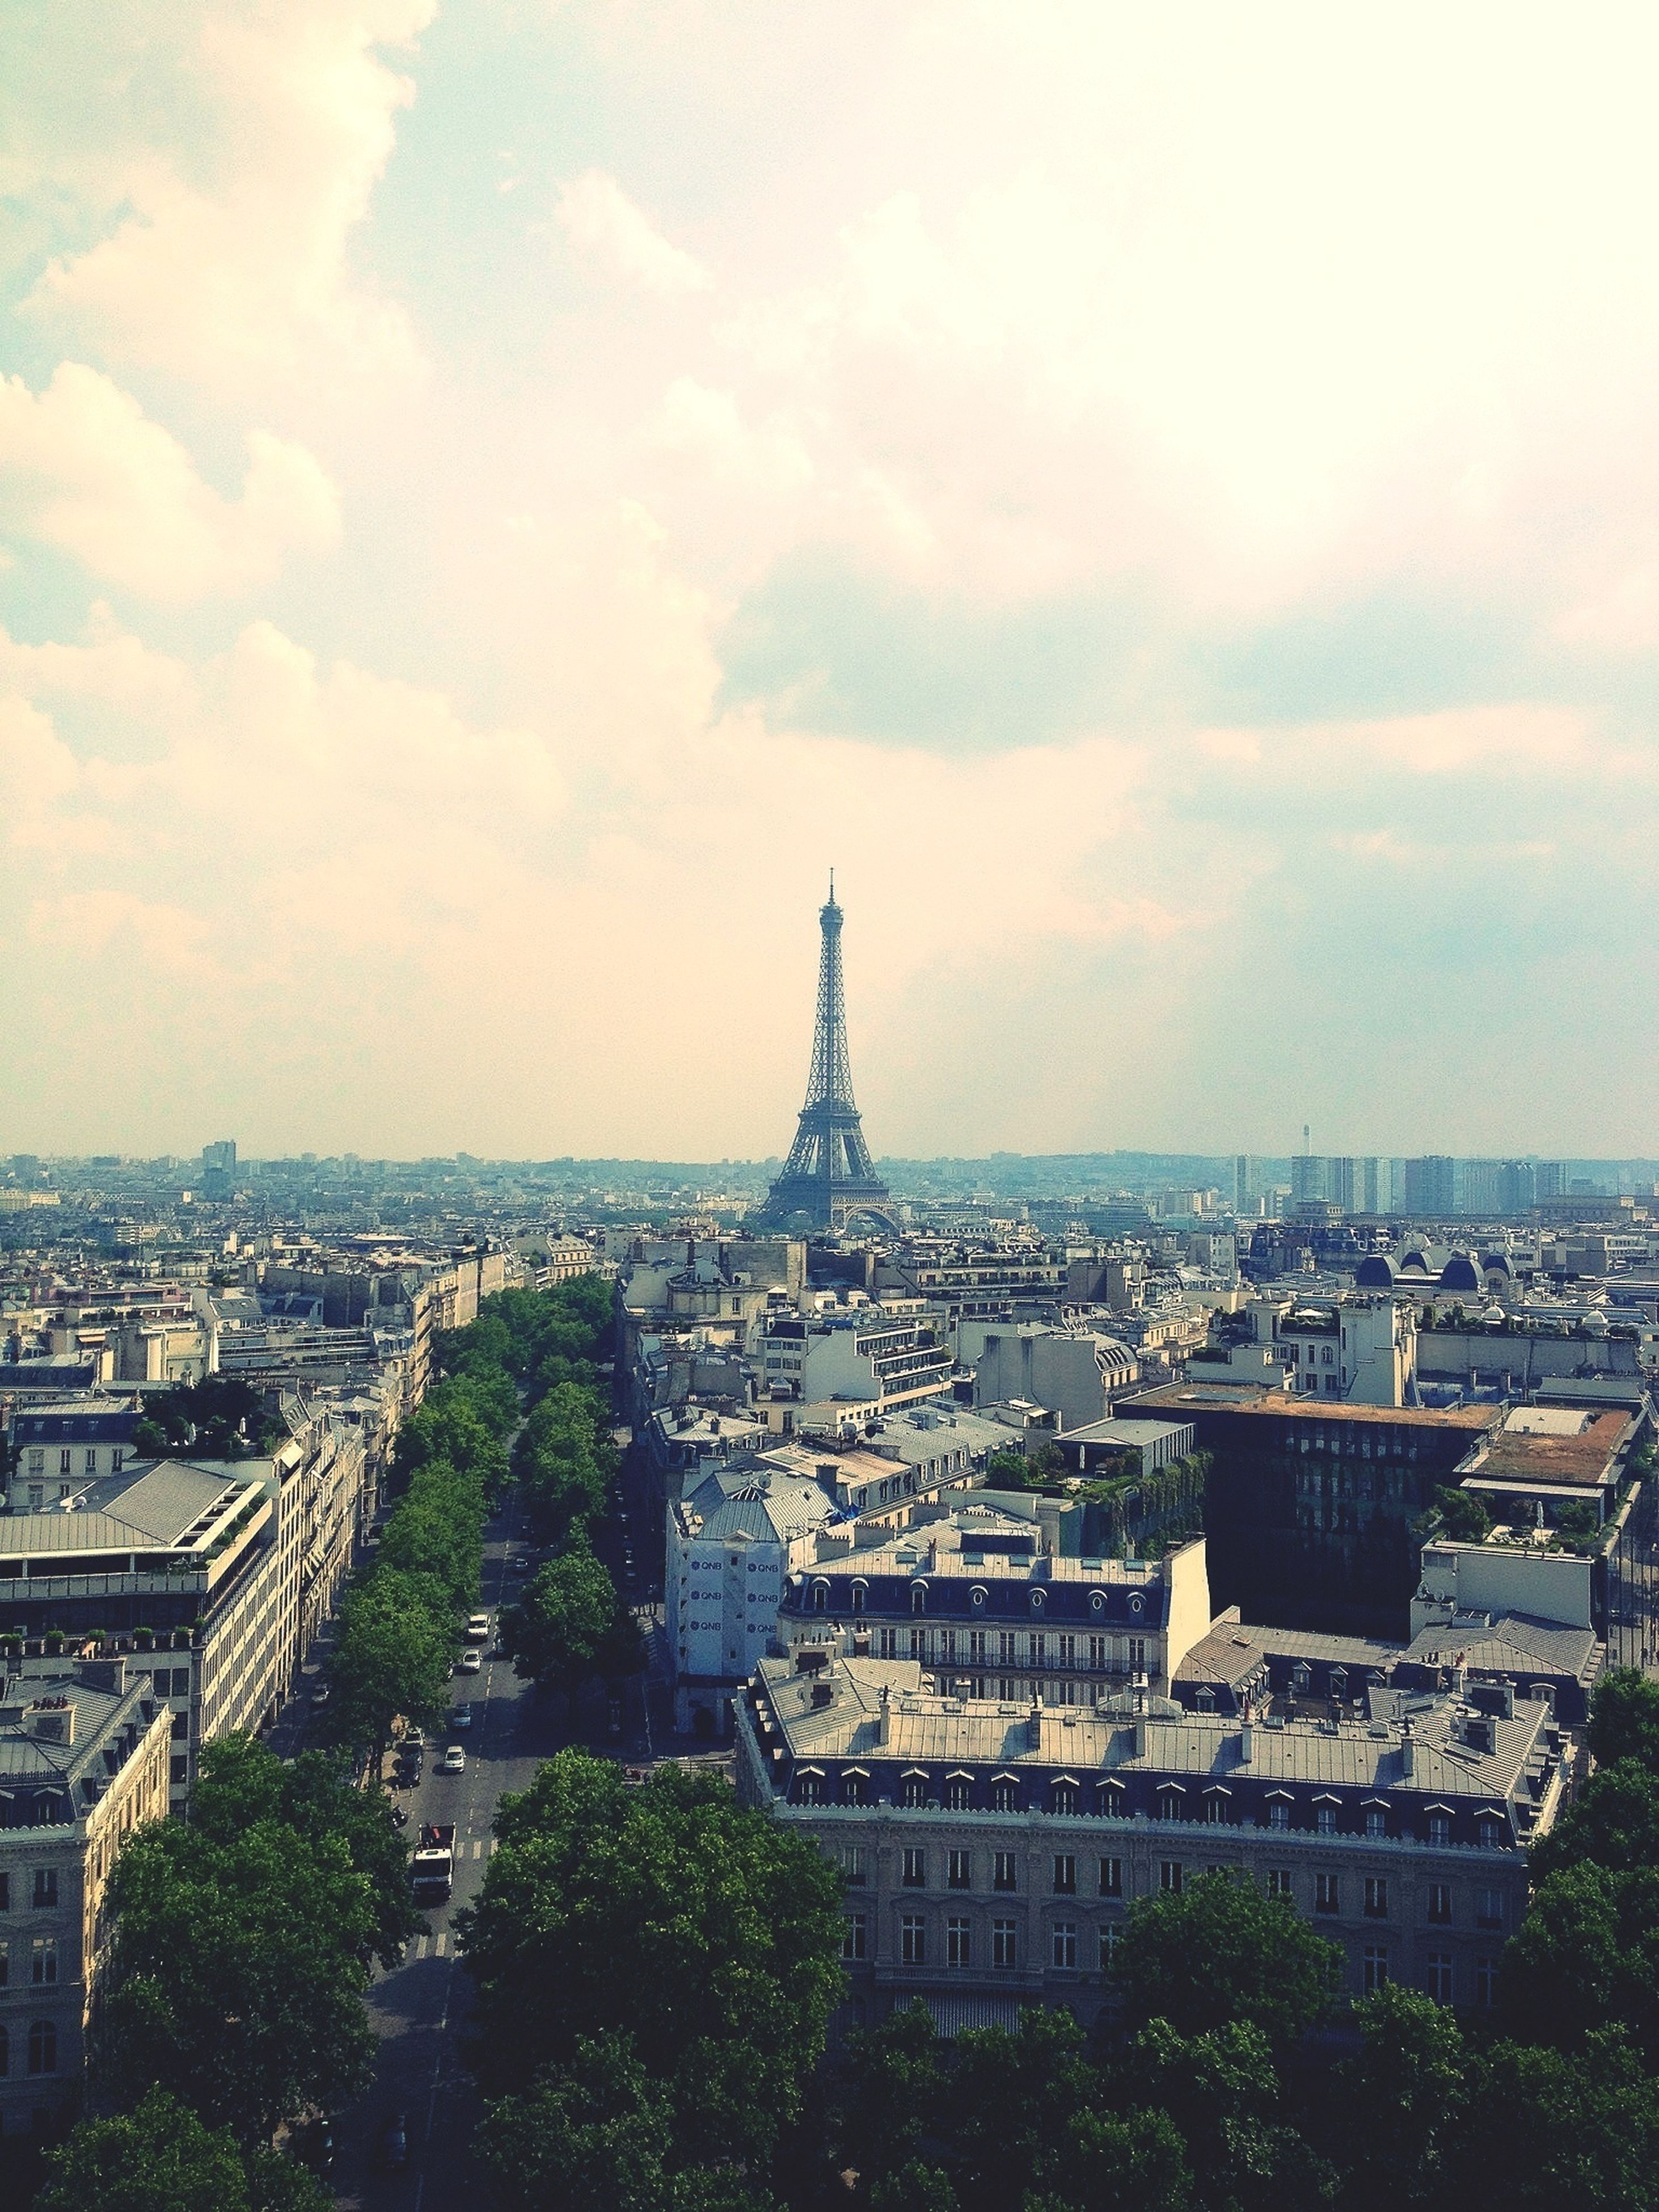 architecture, built structure, building exterior, cityscape, city, sky, crowded, capital cities, famous place, high angle view, travel destinations, tower, international landmark, eiffel tower, tall - high, tourism, travel, cloud - sky, residential district, city life